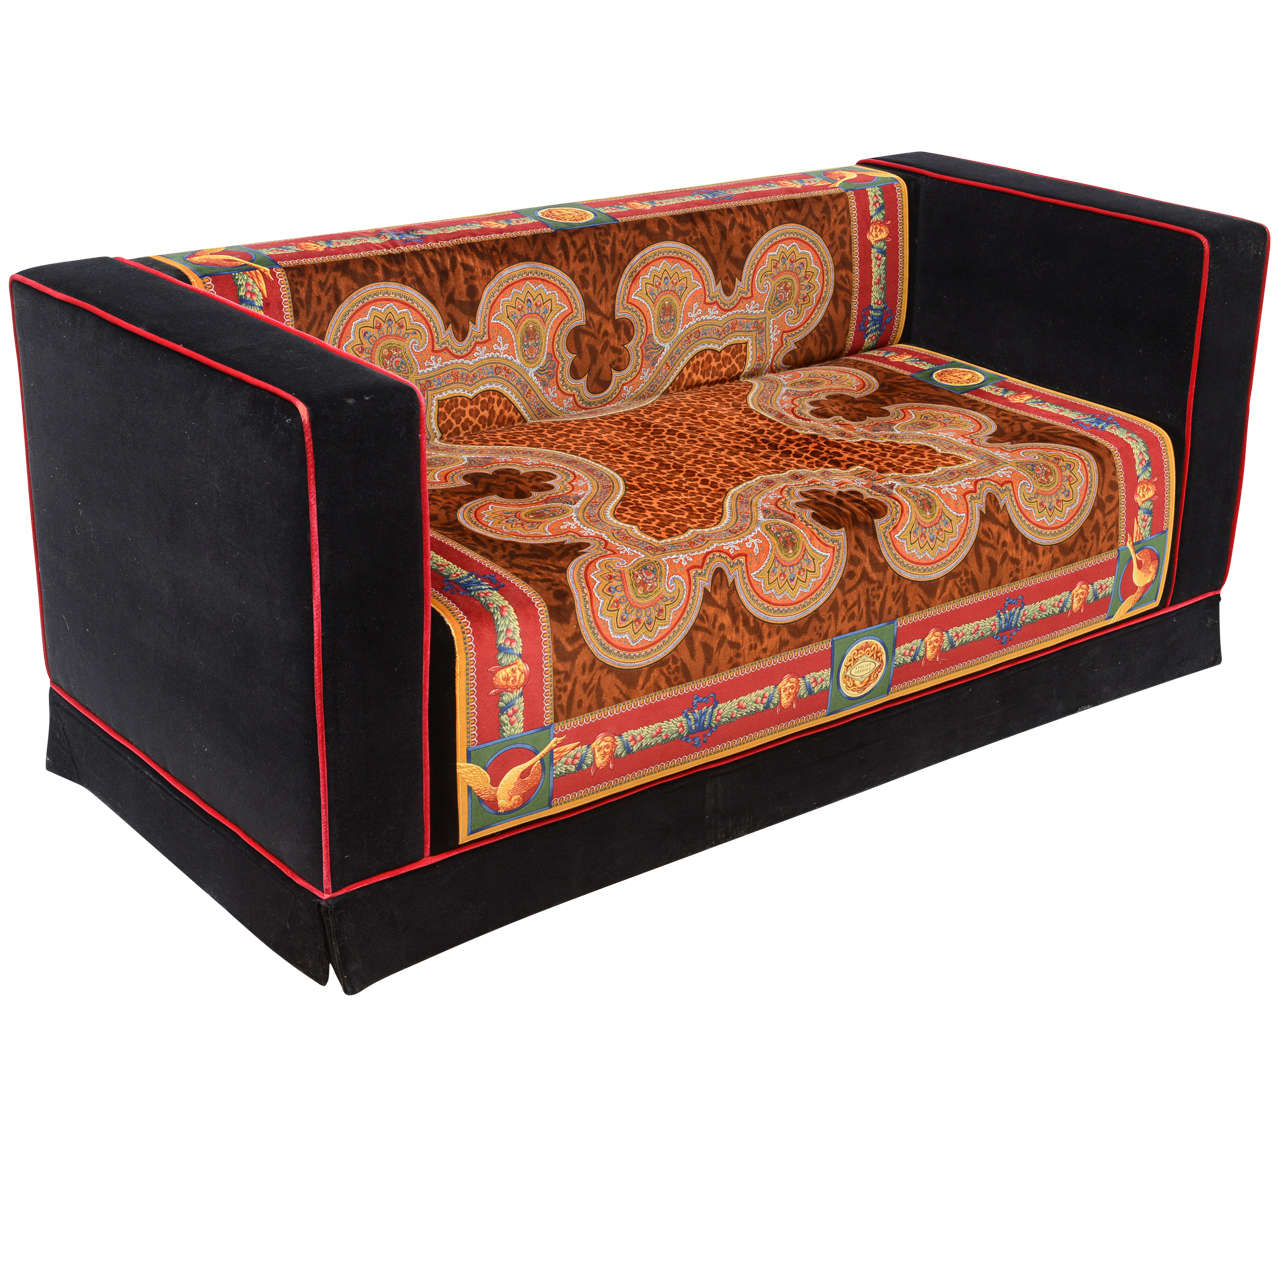 percival lafer sofa luxe bobs versace divan at 1stdibs